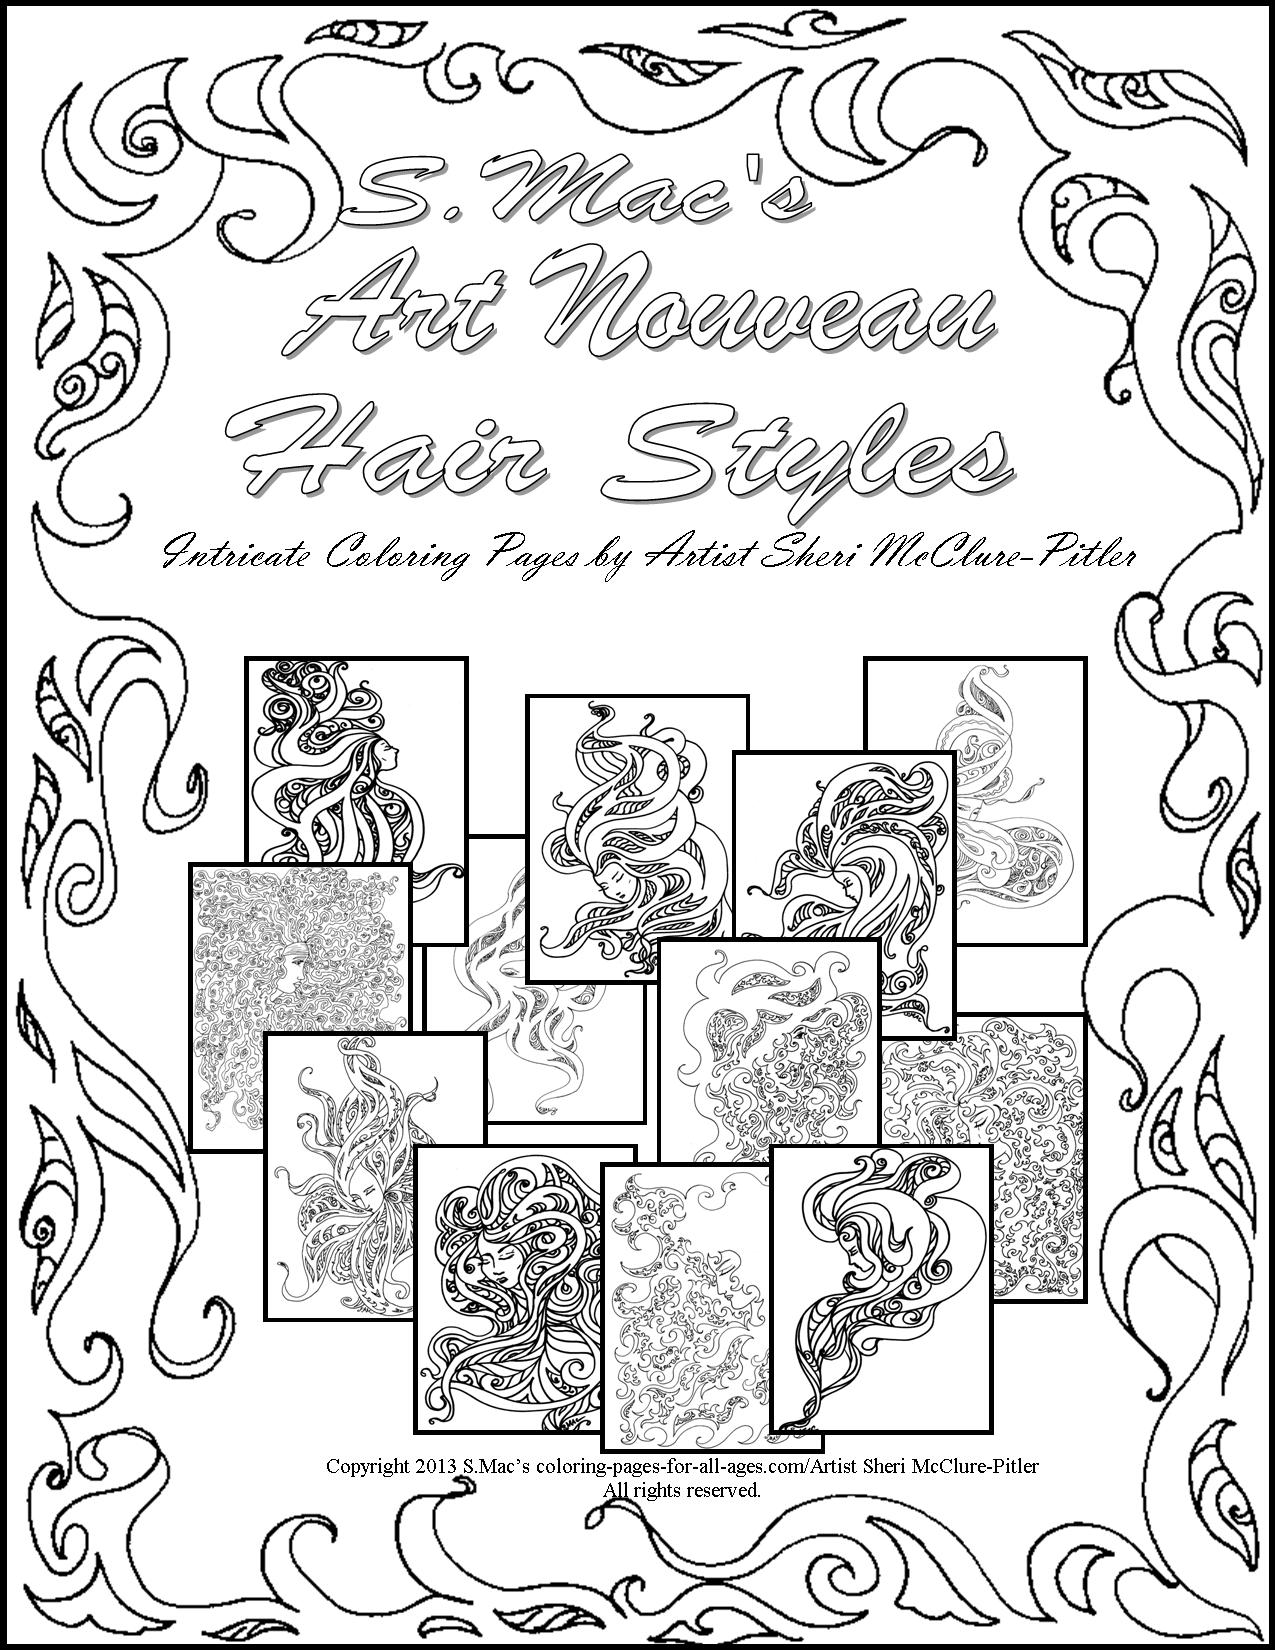 S.Mac's Art Nouveau Hair Styles Downloadable Coloring Book